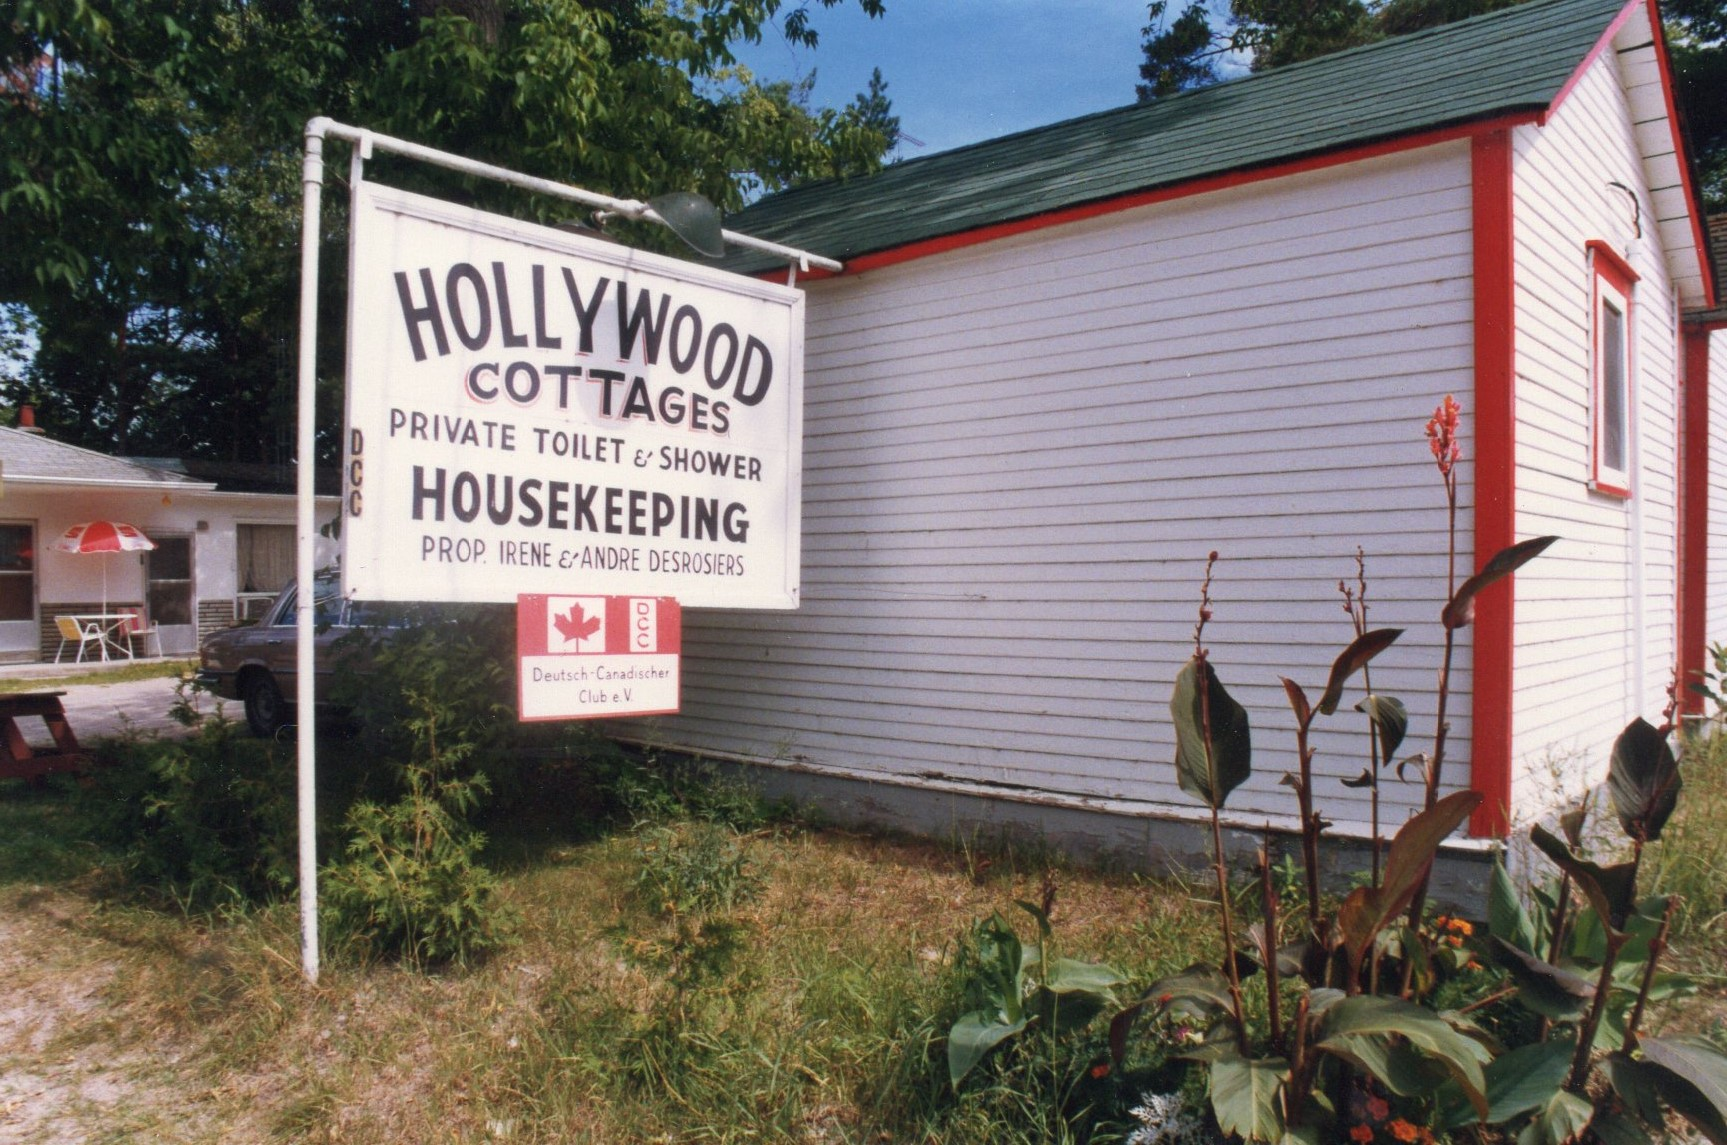 Main Entrance and Sign at Hollywood Cottages